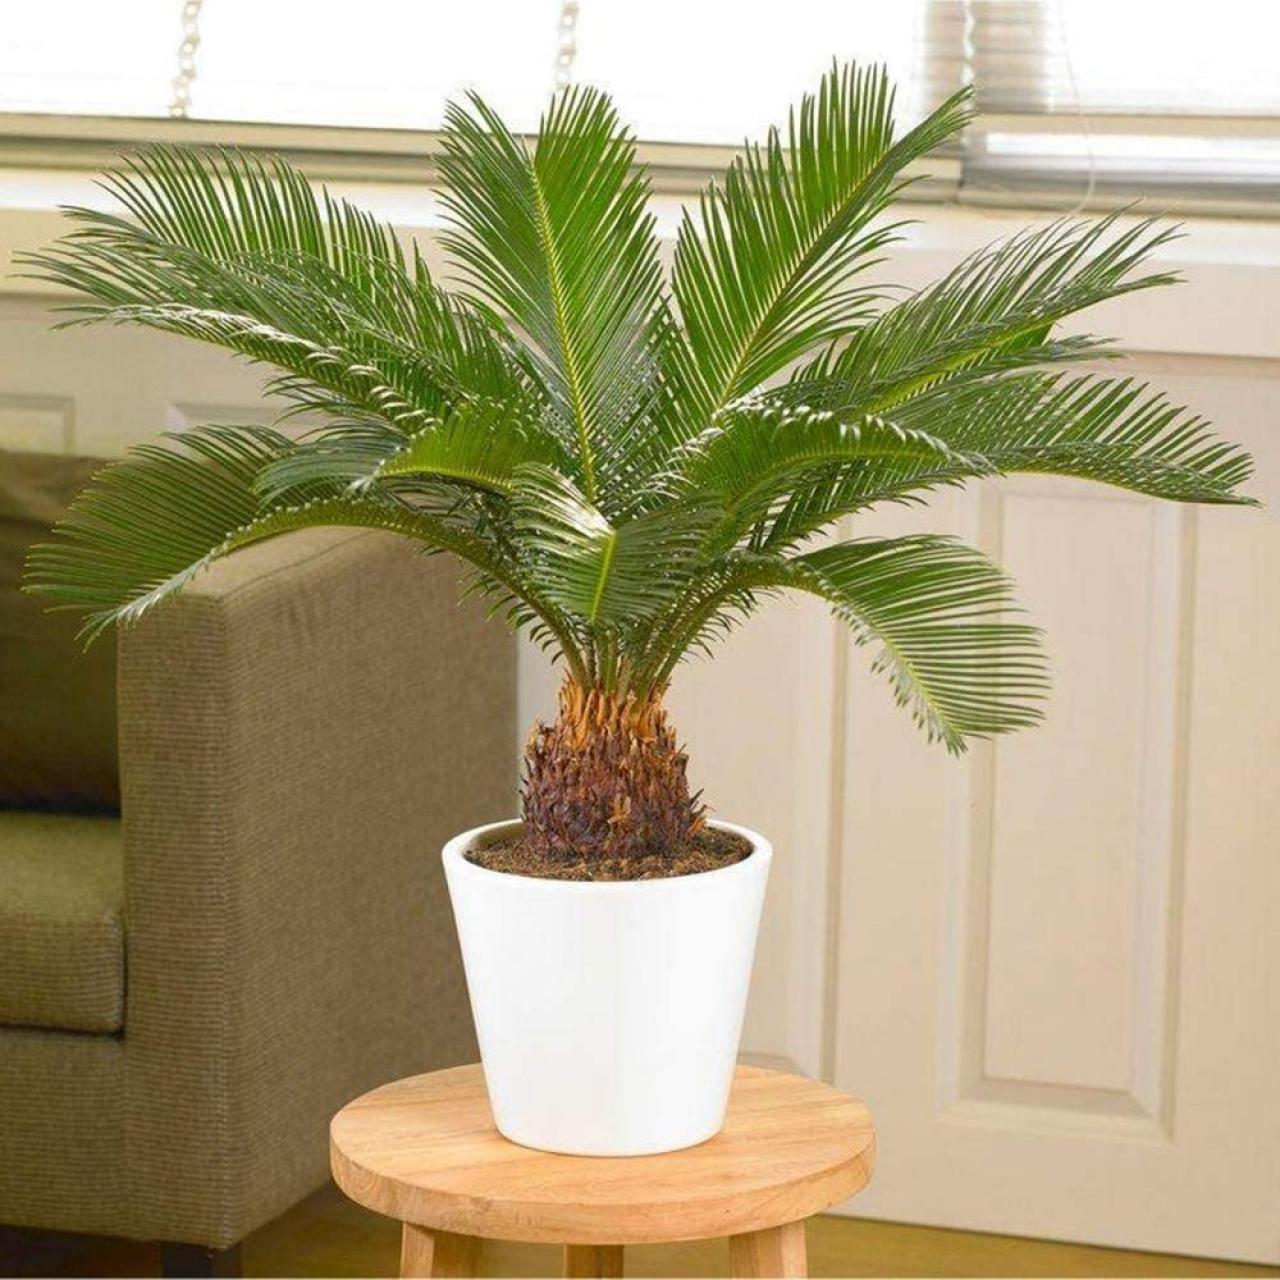 Sago Palm Small for Indoors - Florida Gardening Danger:  Poisonous Palm Trees